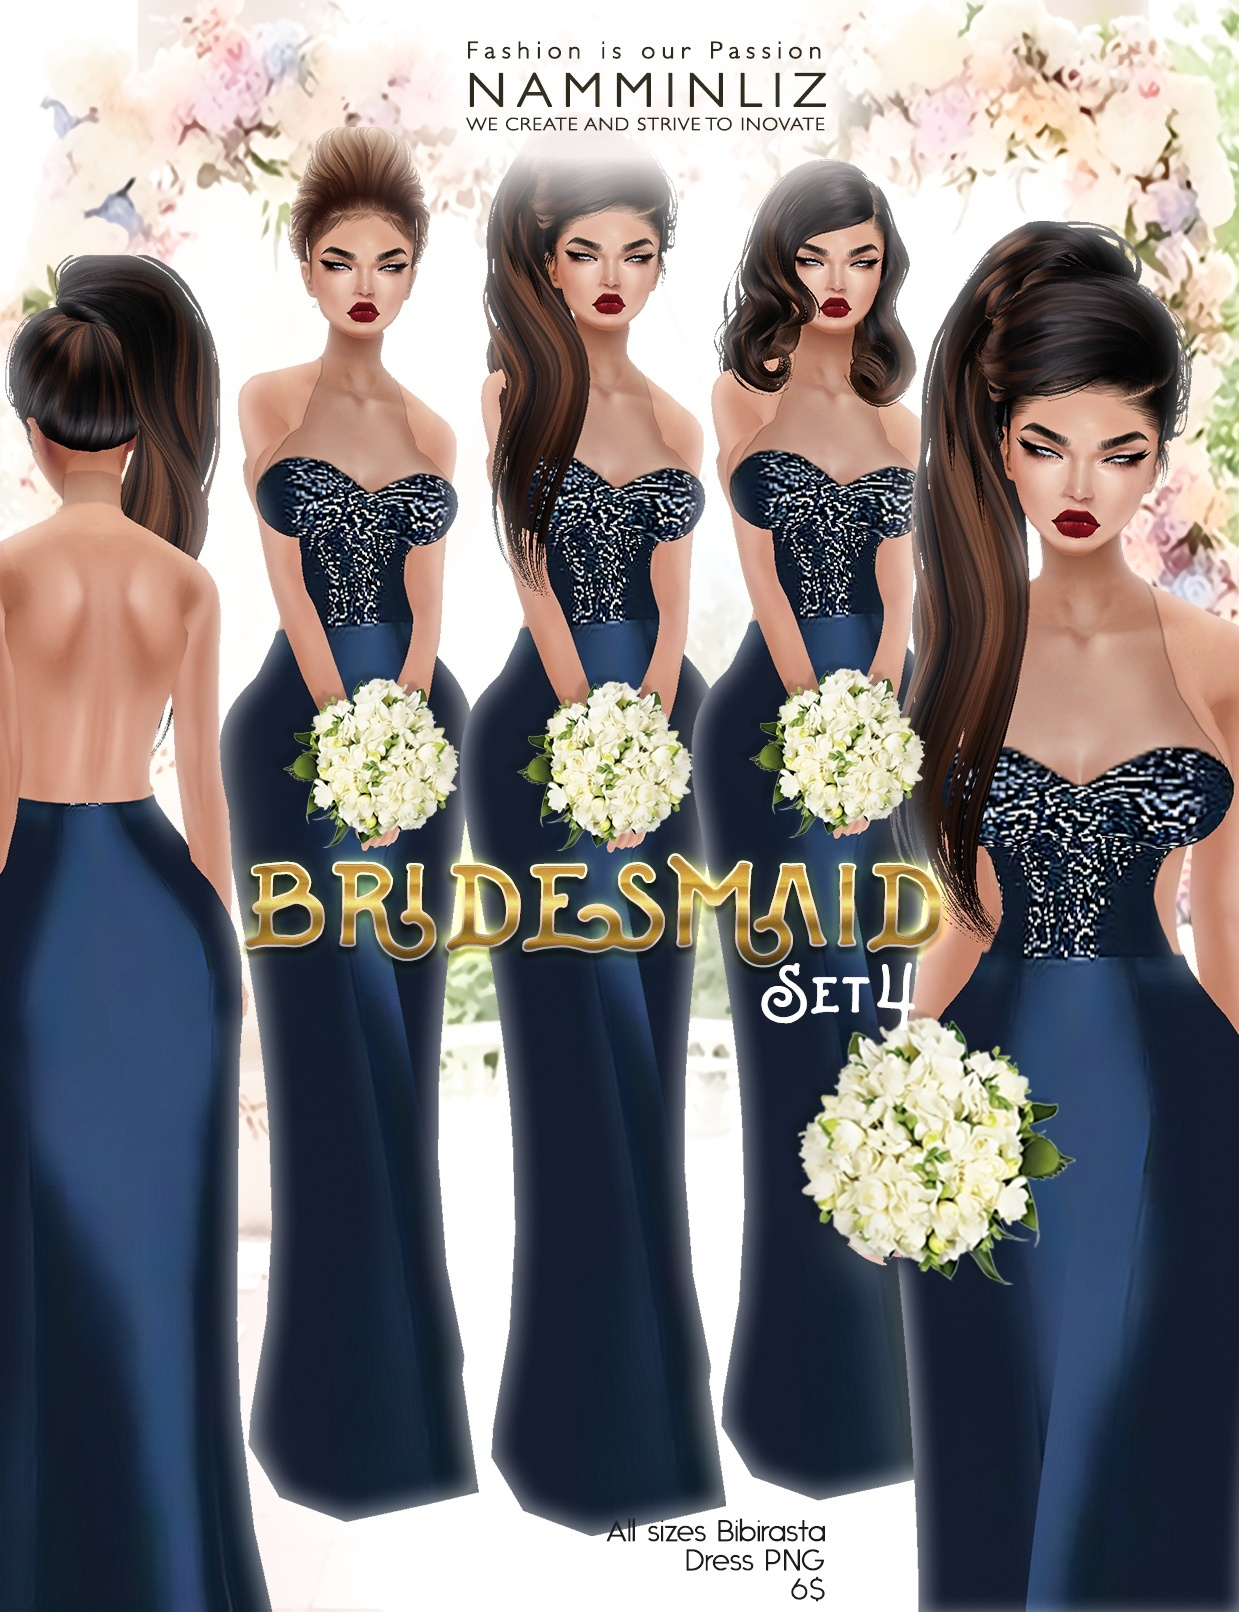 Bridesmaid set4 imvu Bibirasta dress all sizes PNG